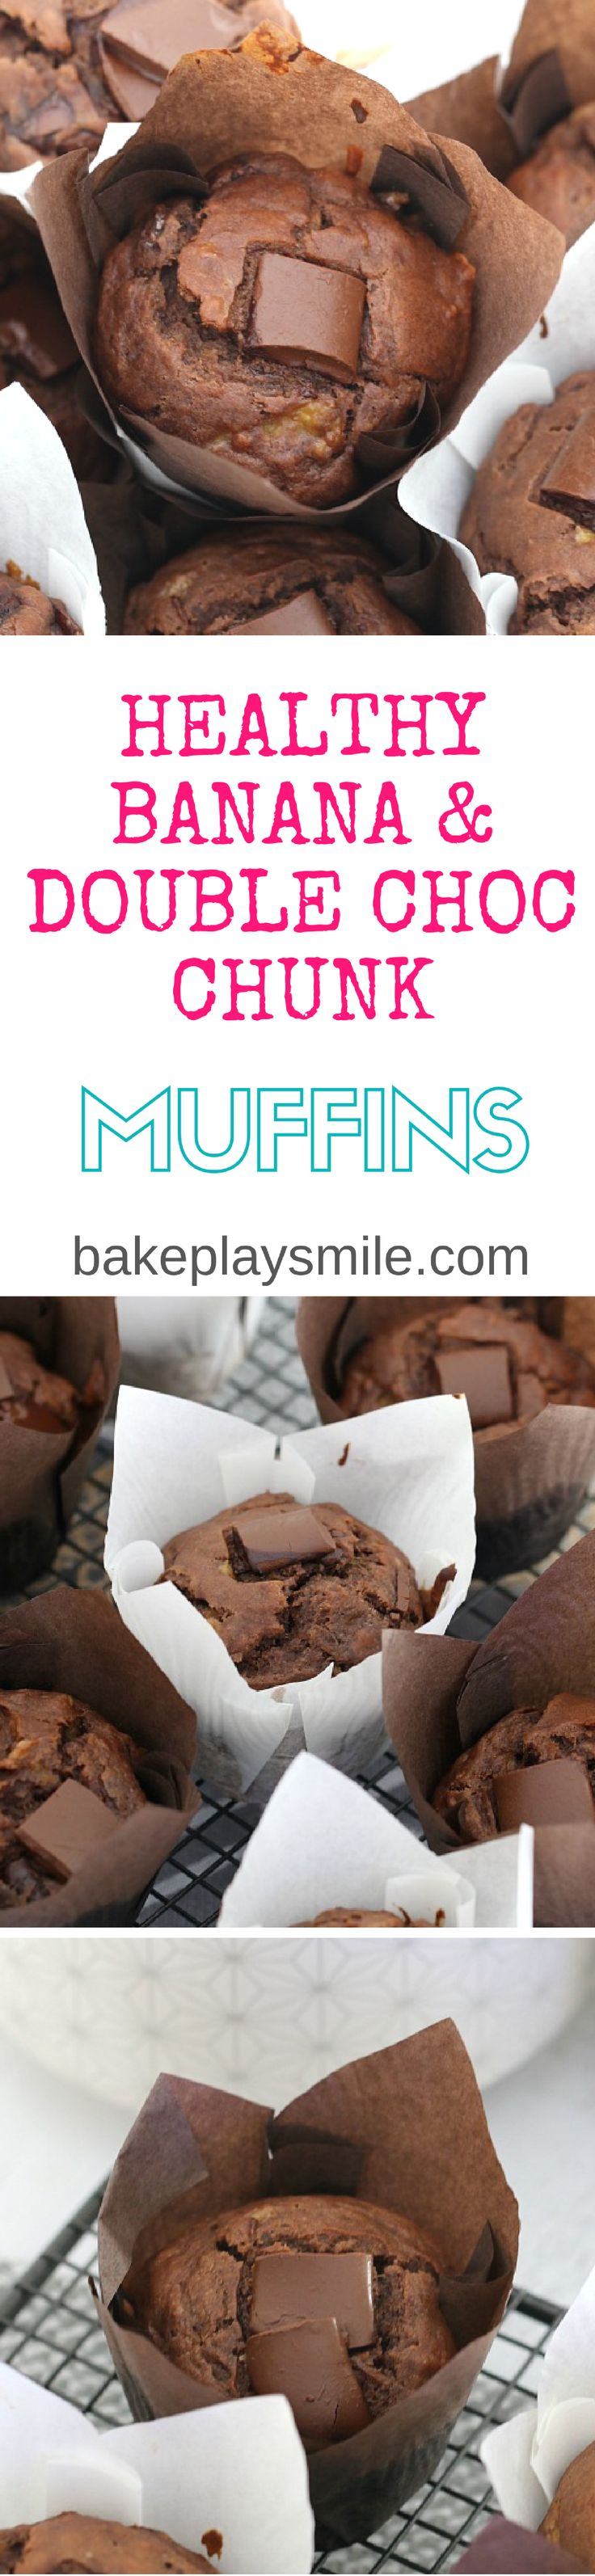 Healthy Banana & Double Chocolate Chunk Muffins that take just 5 minutes to prepare, are moist and totally delicious! Perfect for a breakfast-on-the-go or a lunchbox treat.   #healthy #banana #chocolate #muffins #coconut #oil #yogurt #lunchbox #snack #thermomix #conventional #easy #baking #recipe